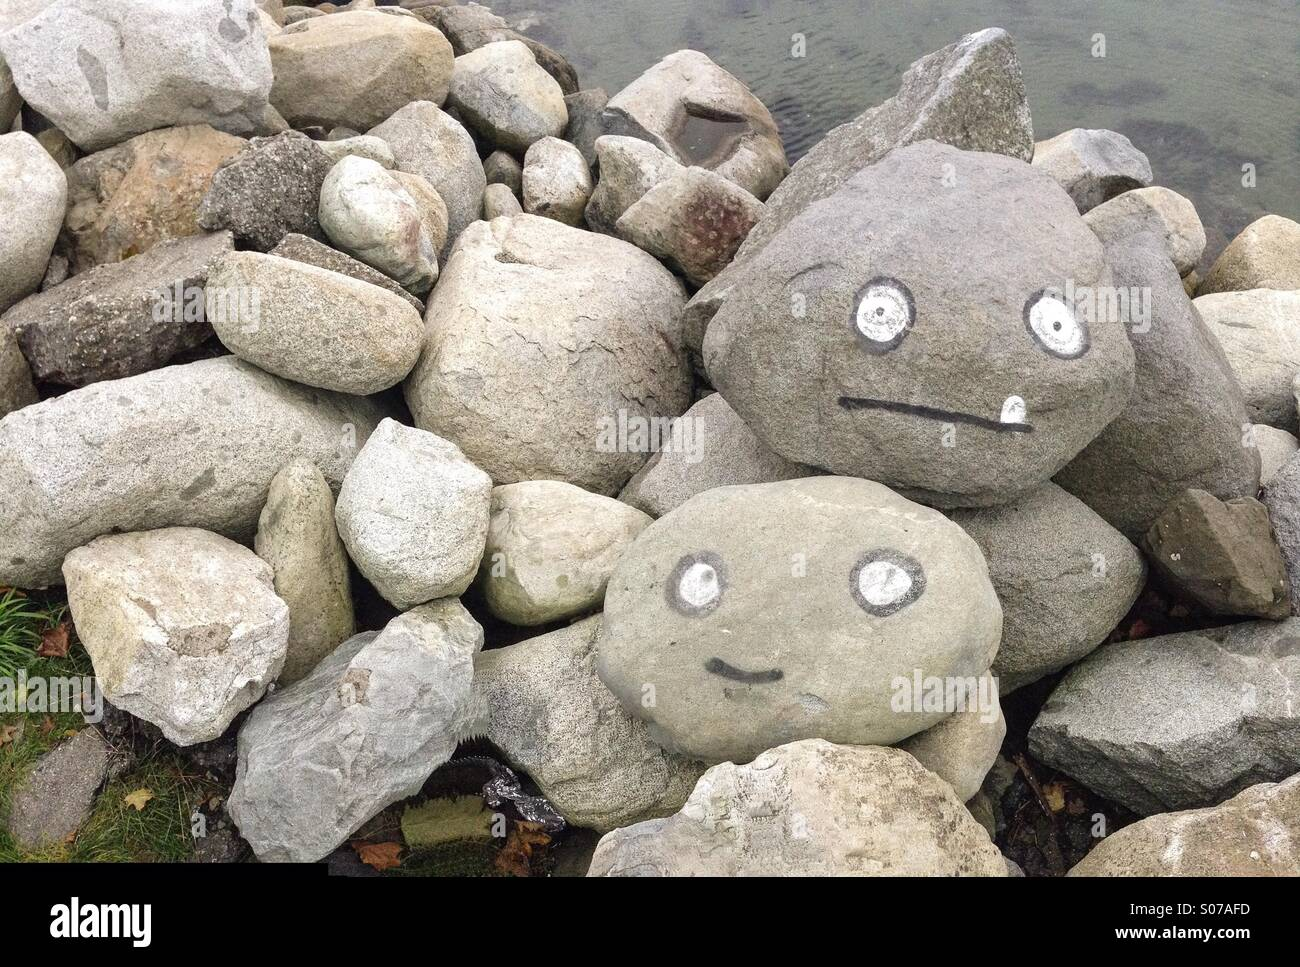 Painted faces on boulders - Stock Image